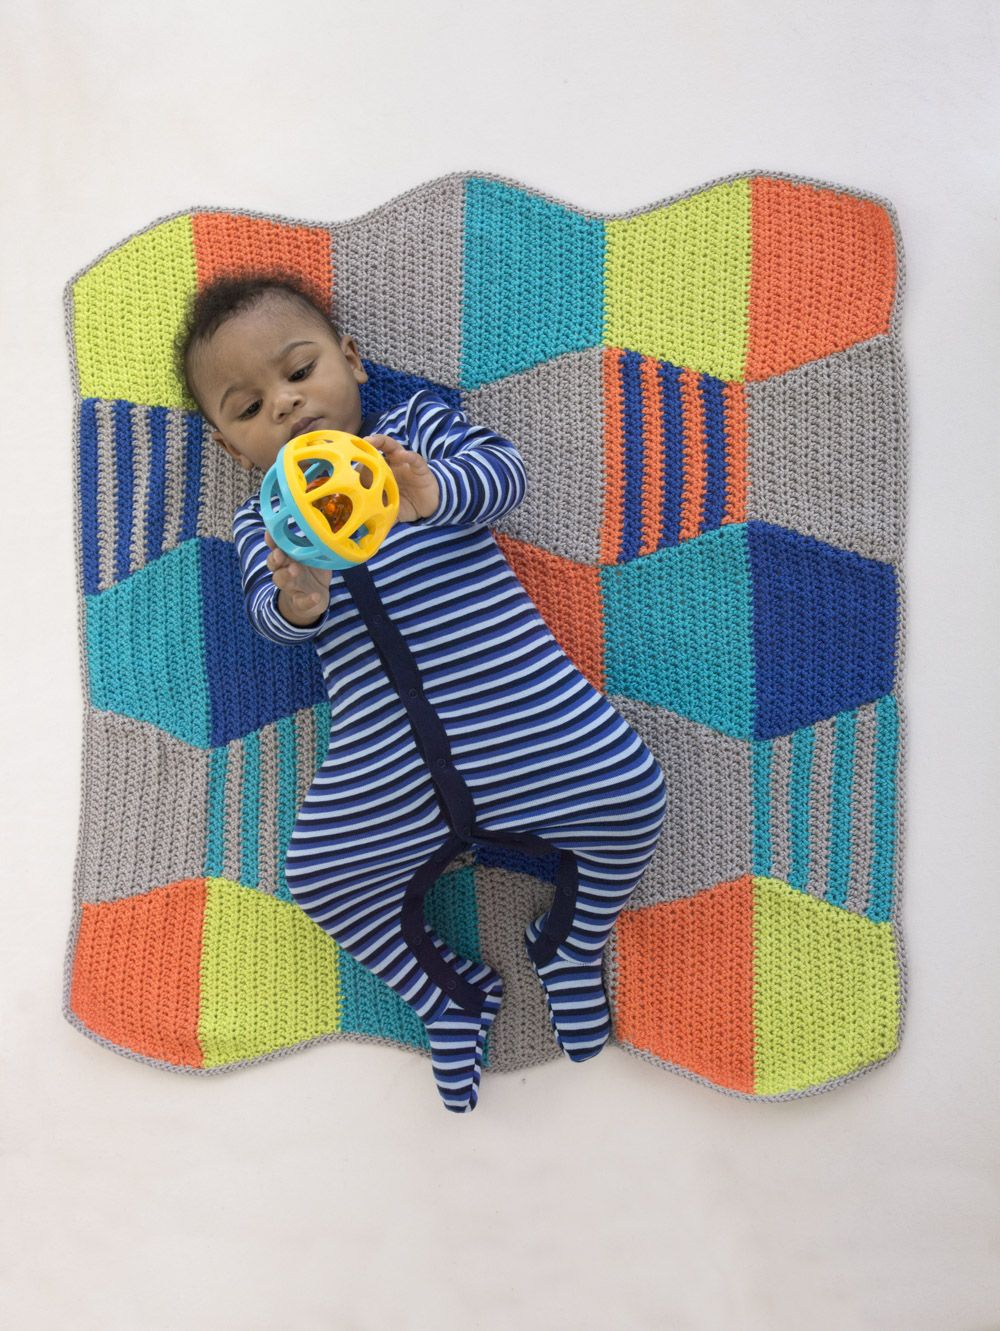 Modern crochet baby blanket google search granny blanket modern crochet baby blanket google search bankloansurffo Image collections